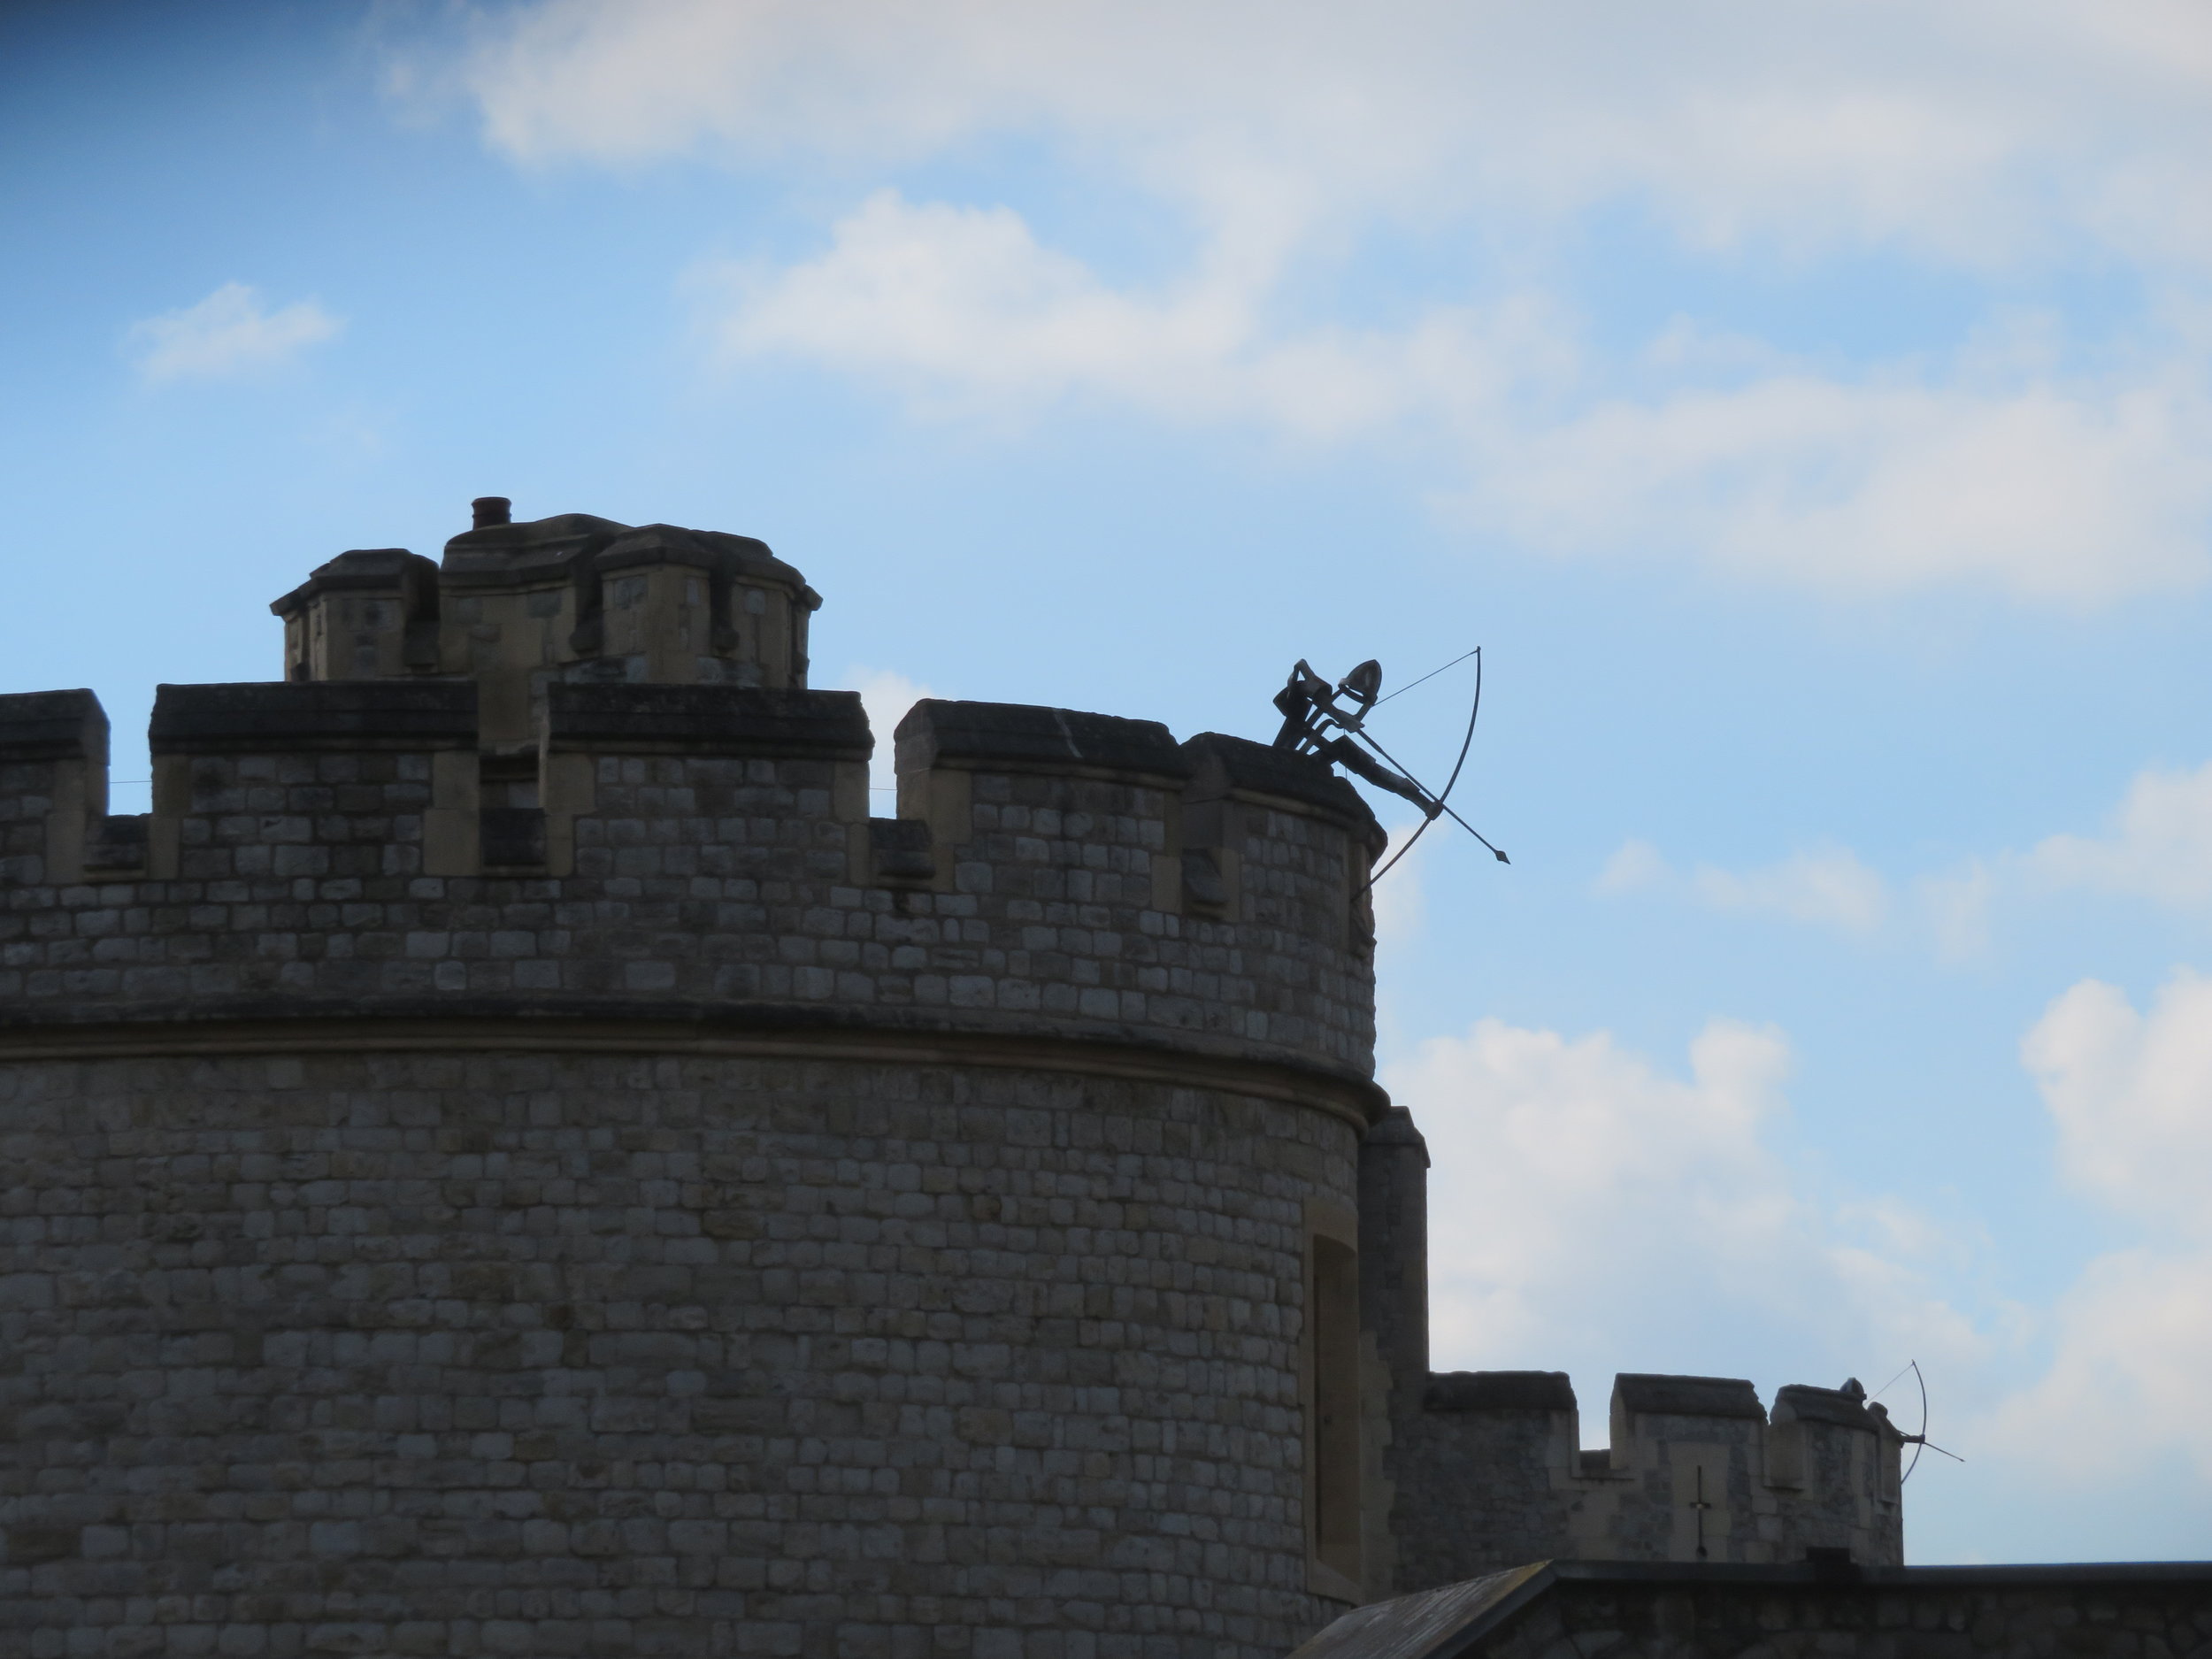 We loved the archers strategically placed at the top of the Tower of London.